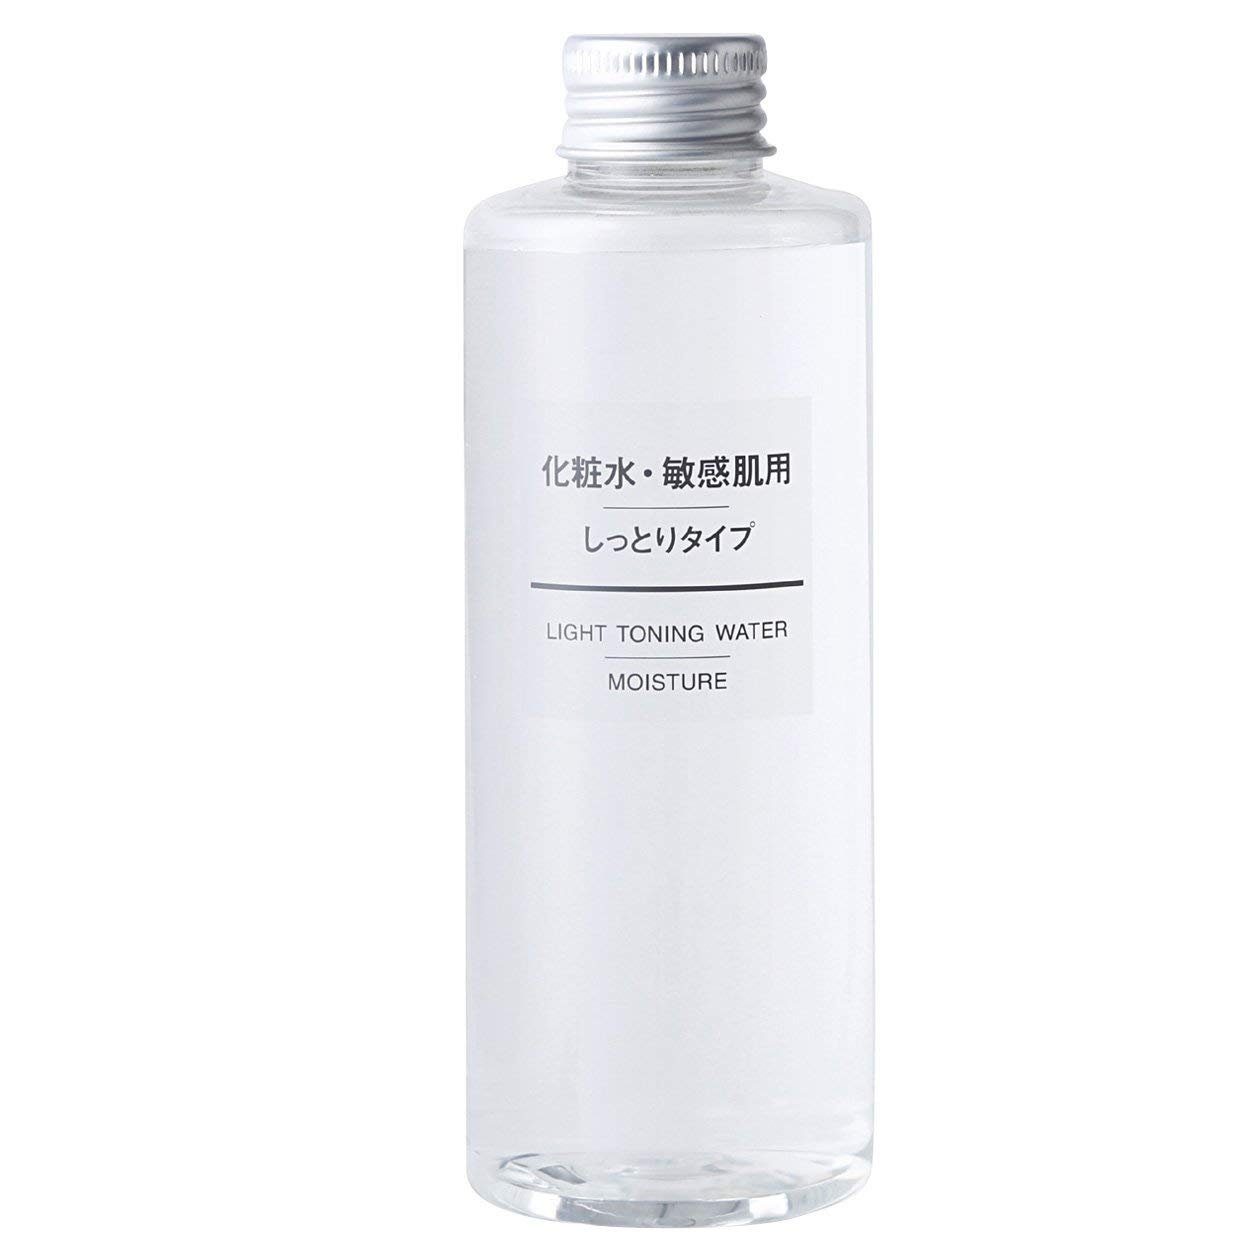 JAPANESE SKIN CARE SERIES - For Your Basic Beauty Routine